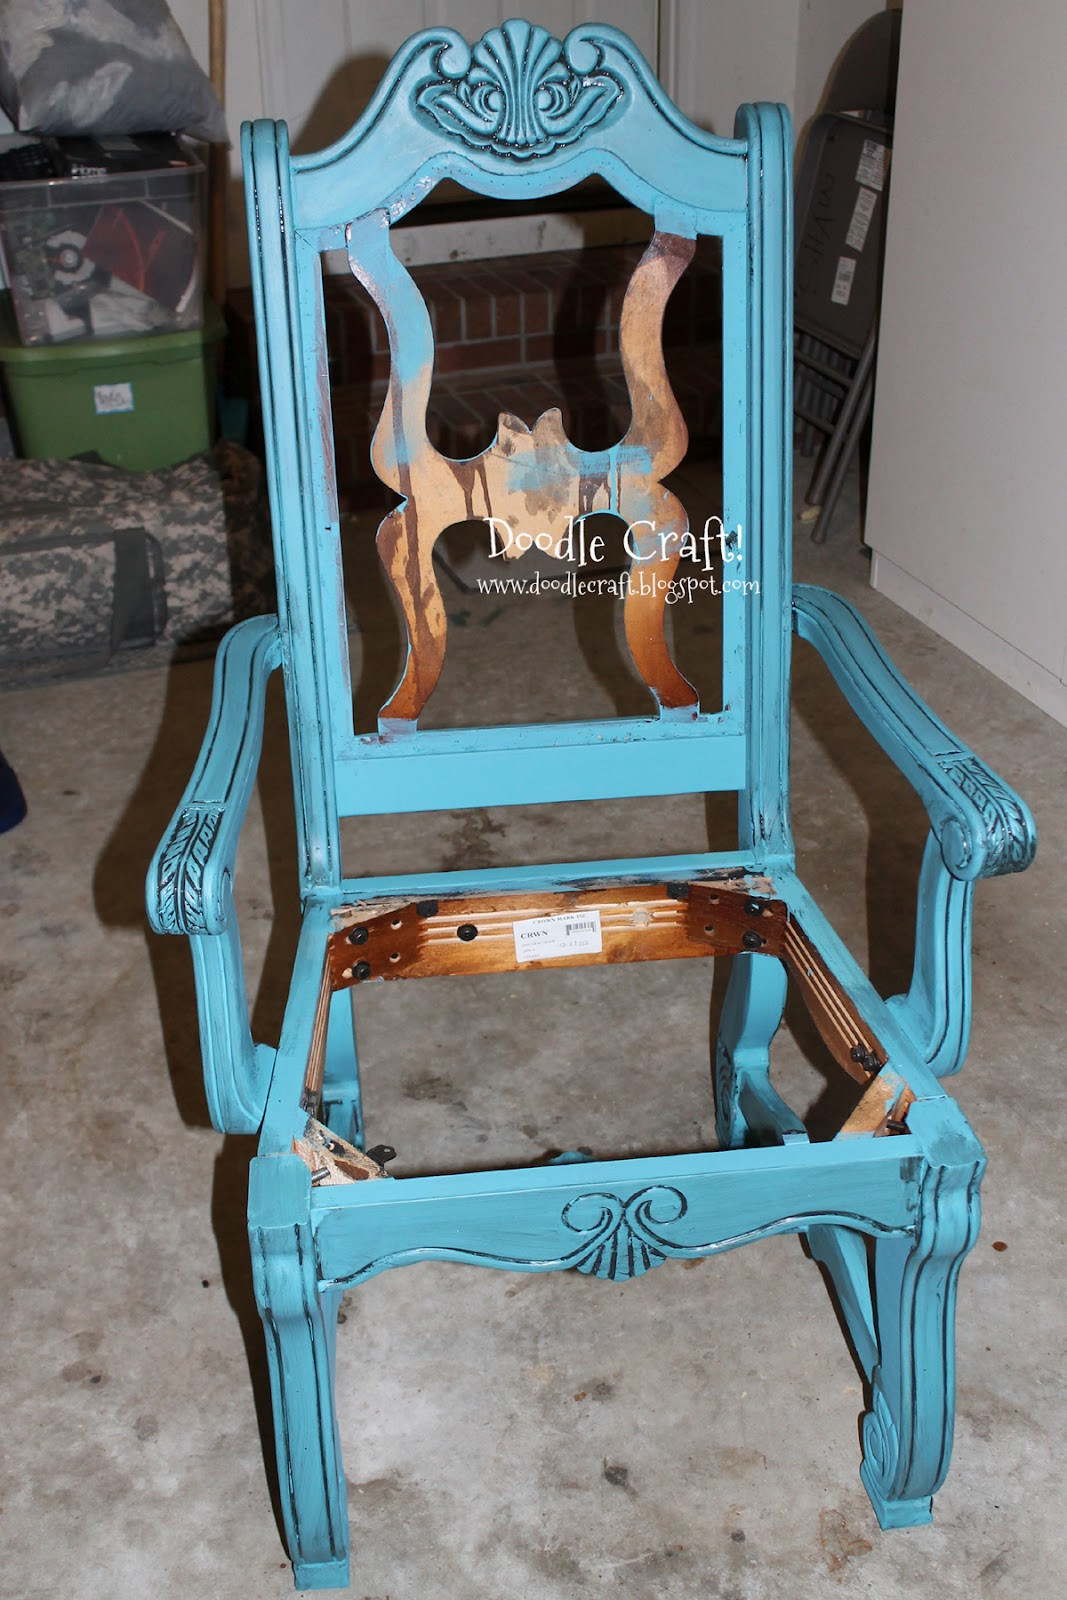 How To Make A Queen Throne Chair Peg Perego High Rocker Doodlecraft Vintage Style Redo For Free